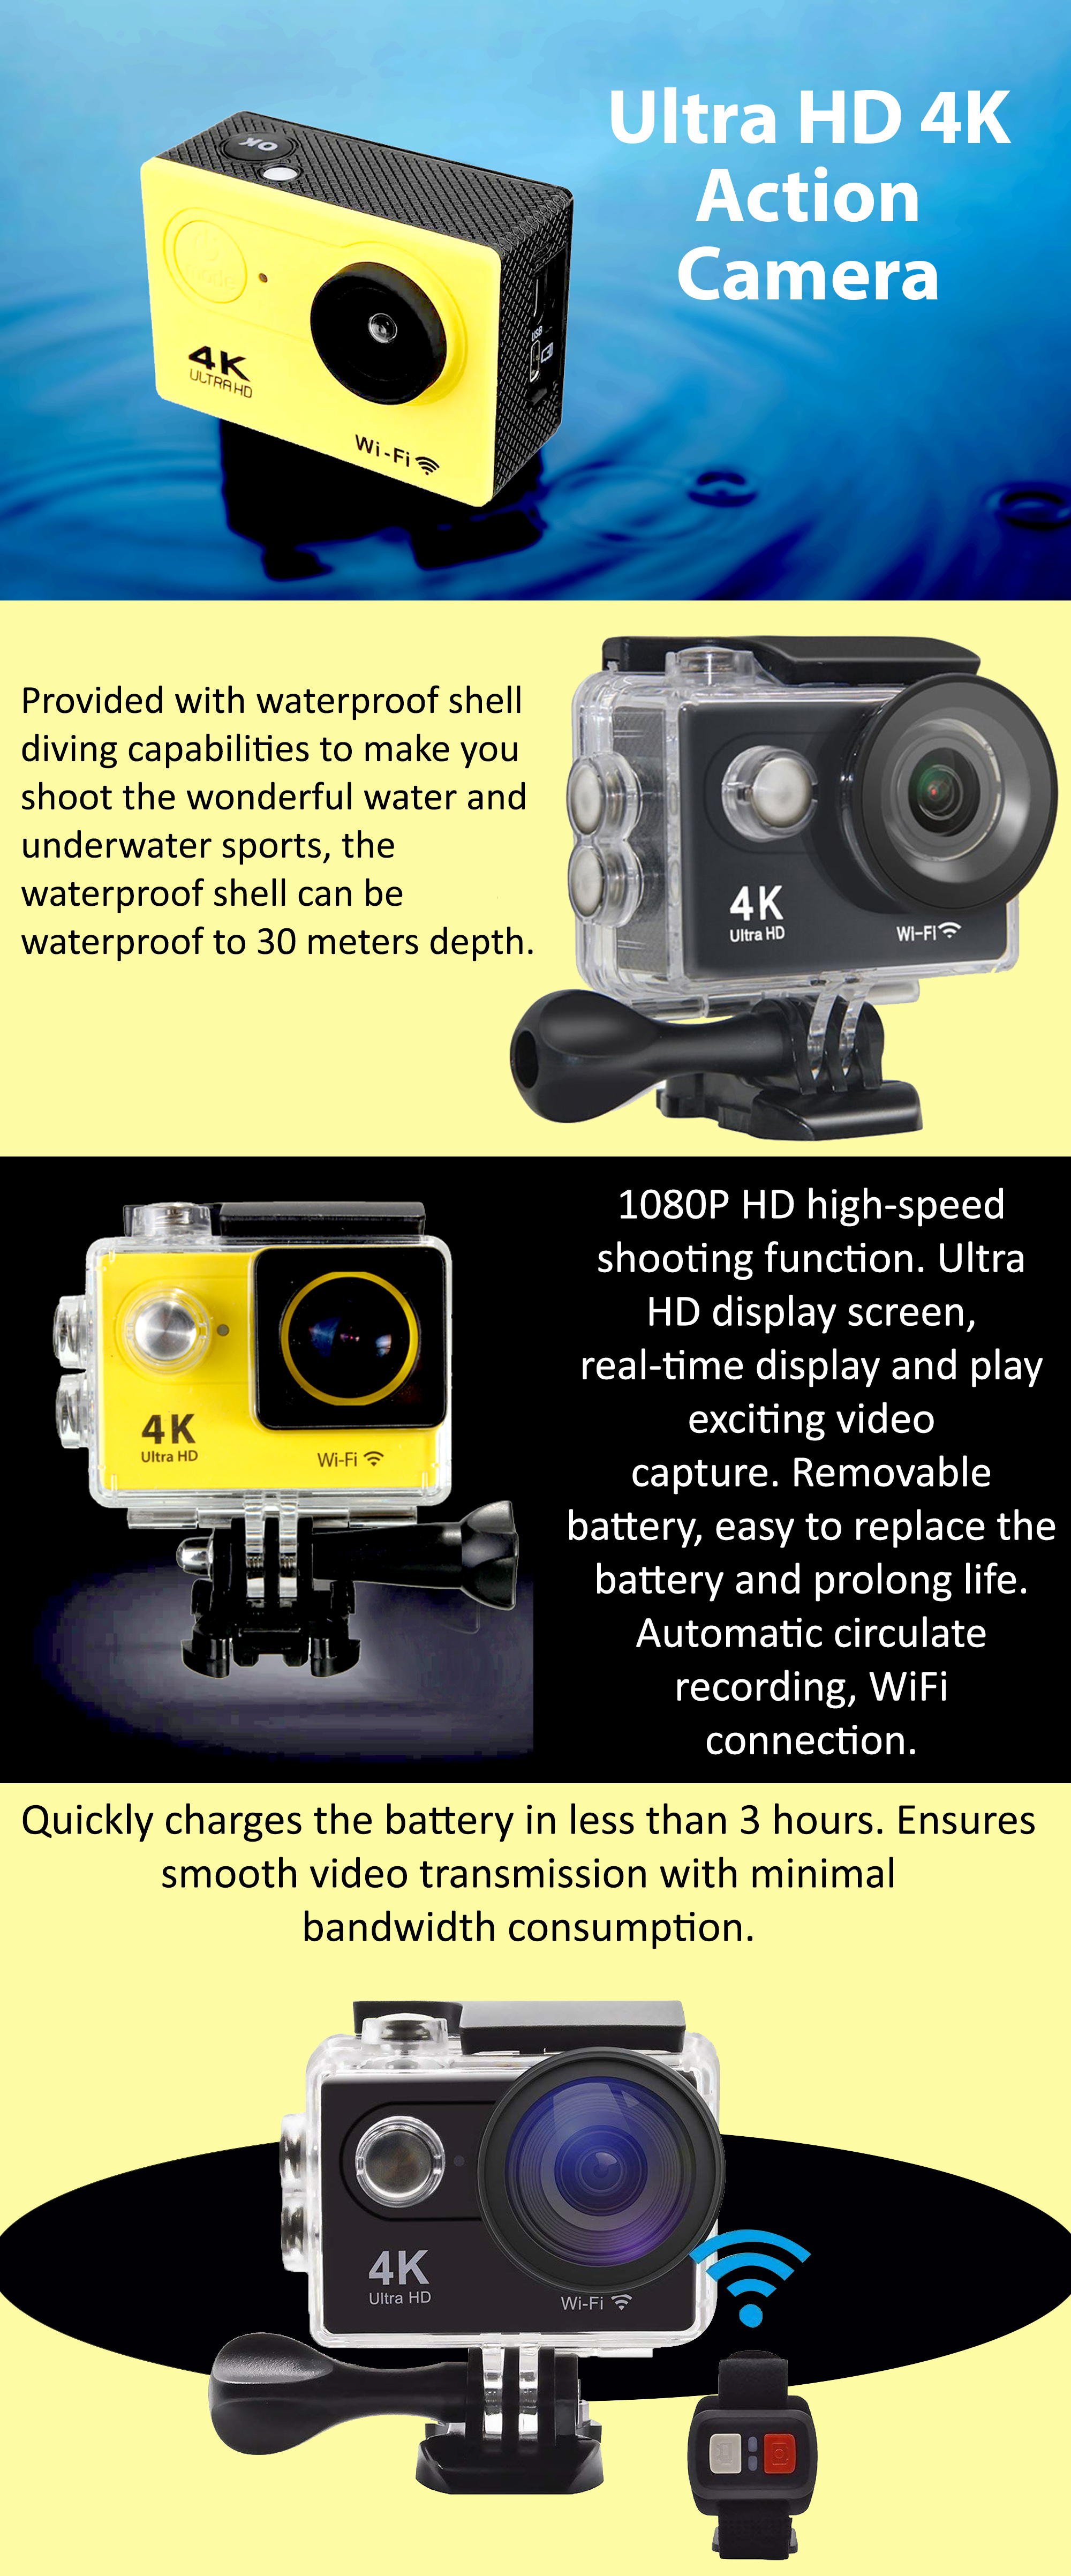 Shop Ultra Hd 4k Action Camera Online In Dubai Abu Dhabi And All Uae